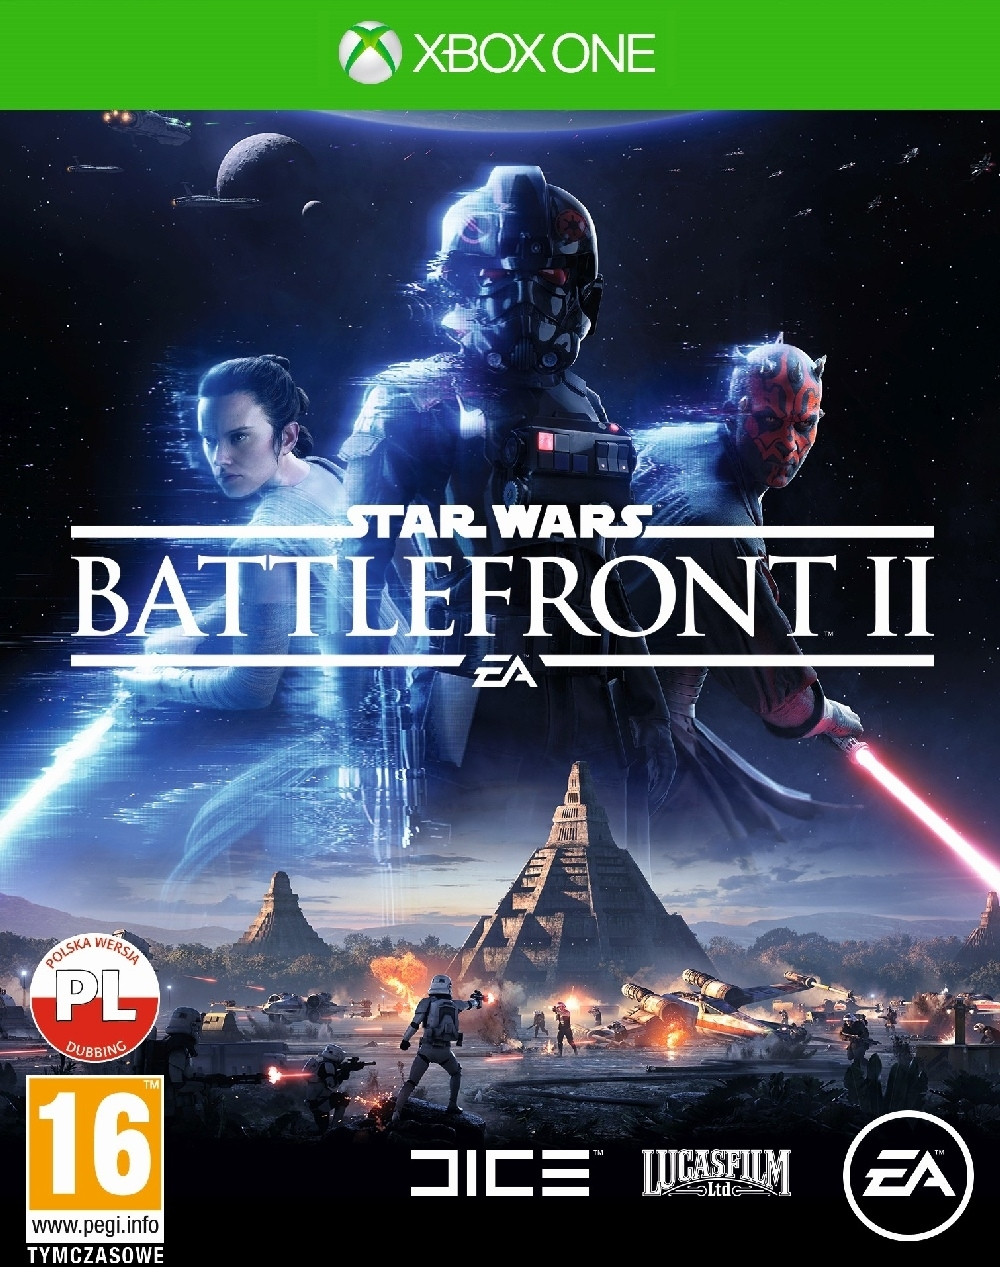 Star Wars Battlefront 2 PL (Xbox One)